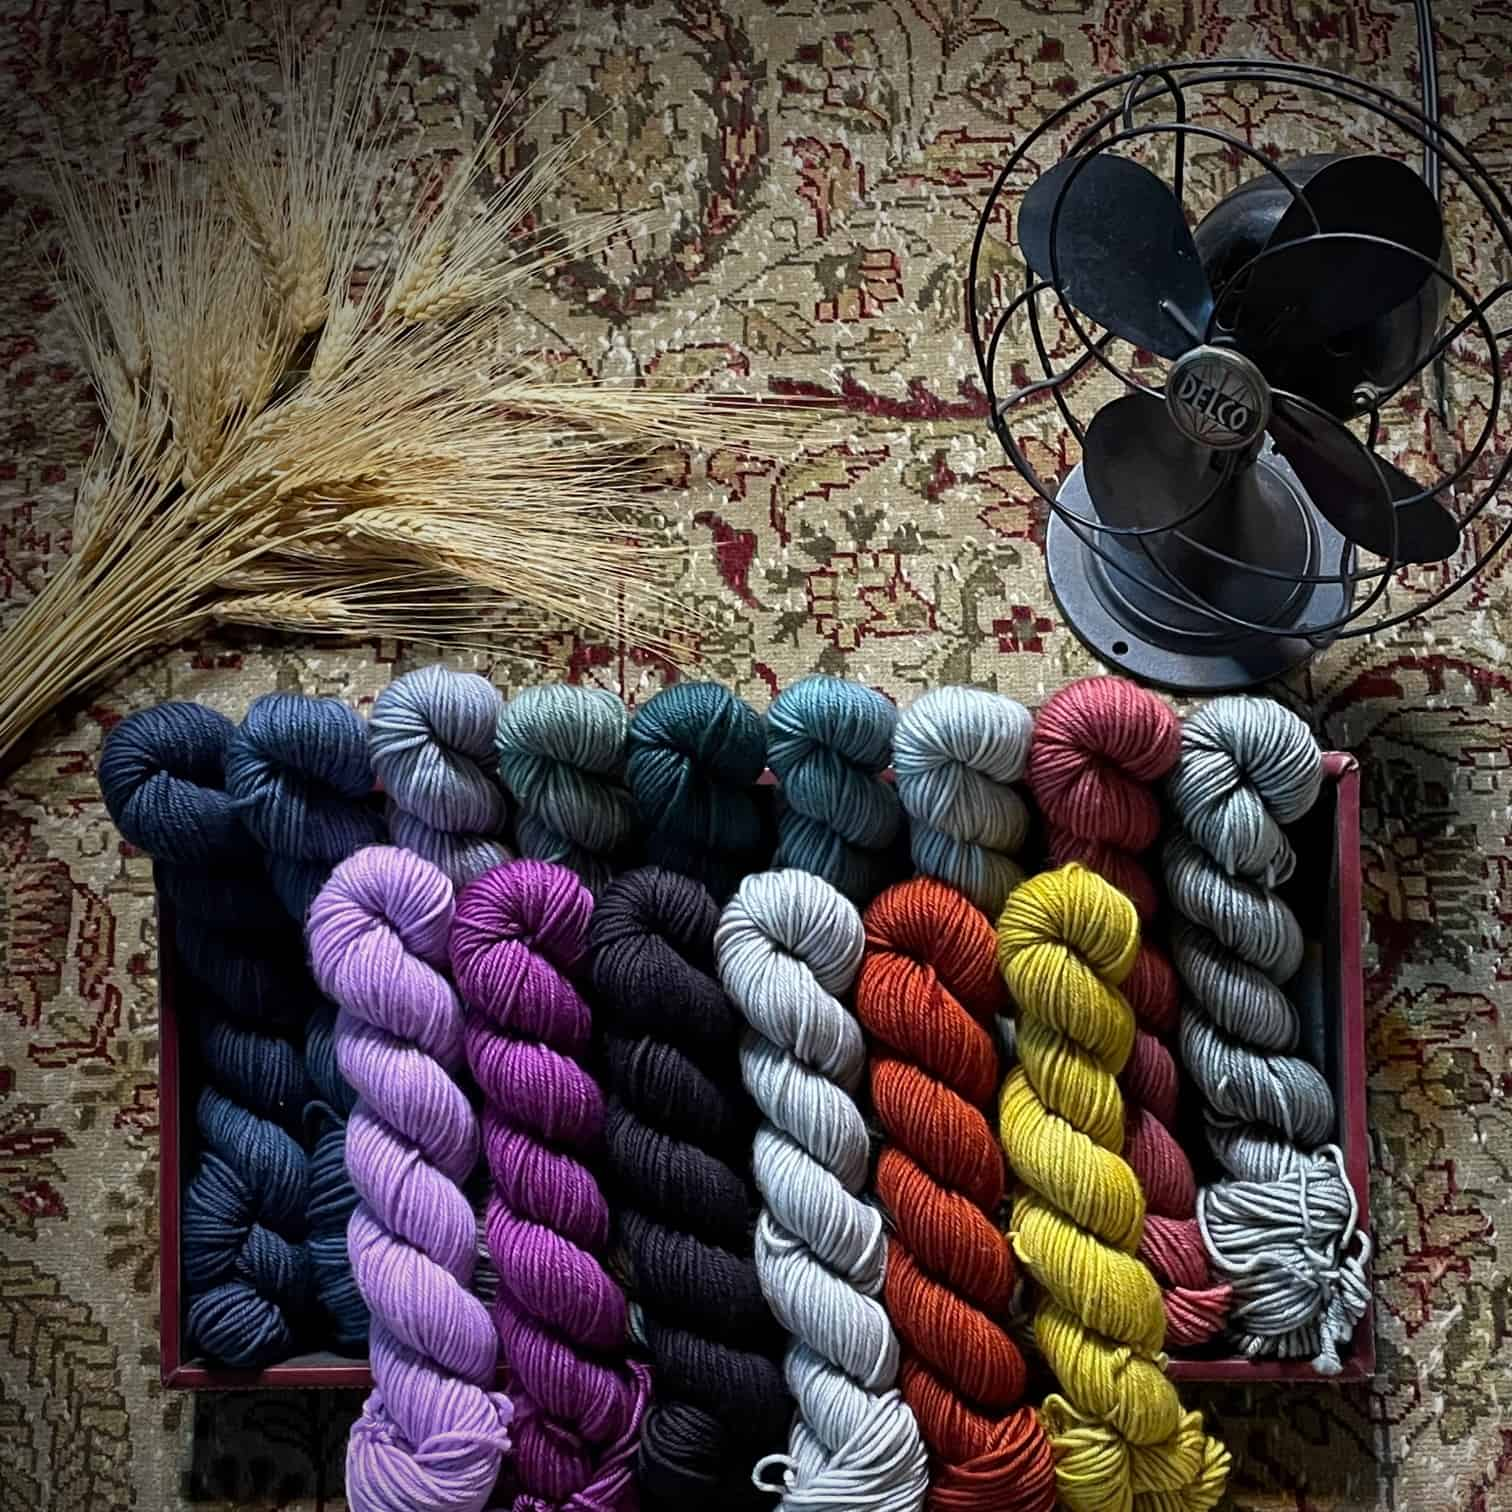 Small skeins of colorful yarn in two rows next to a black fan.